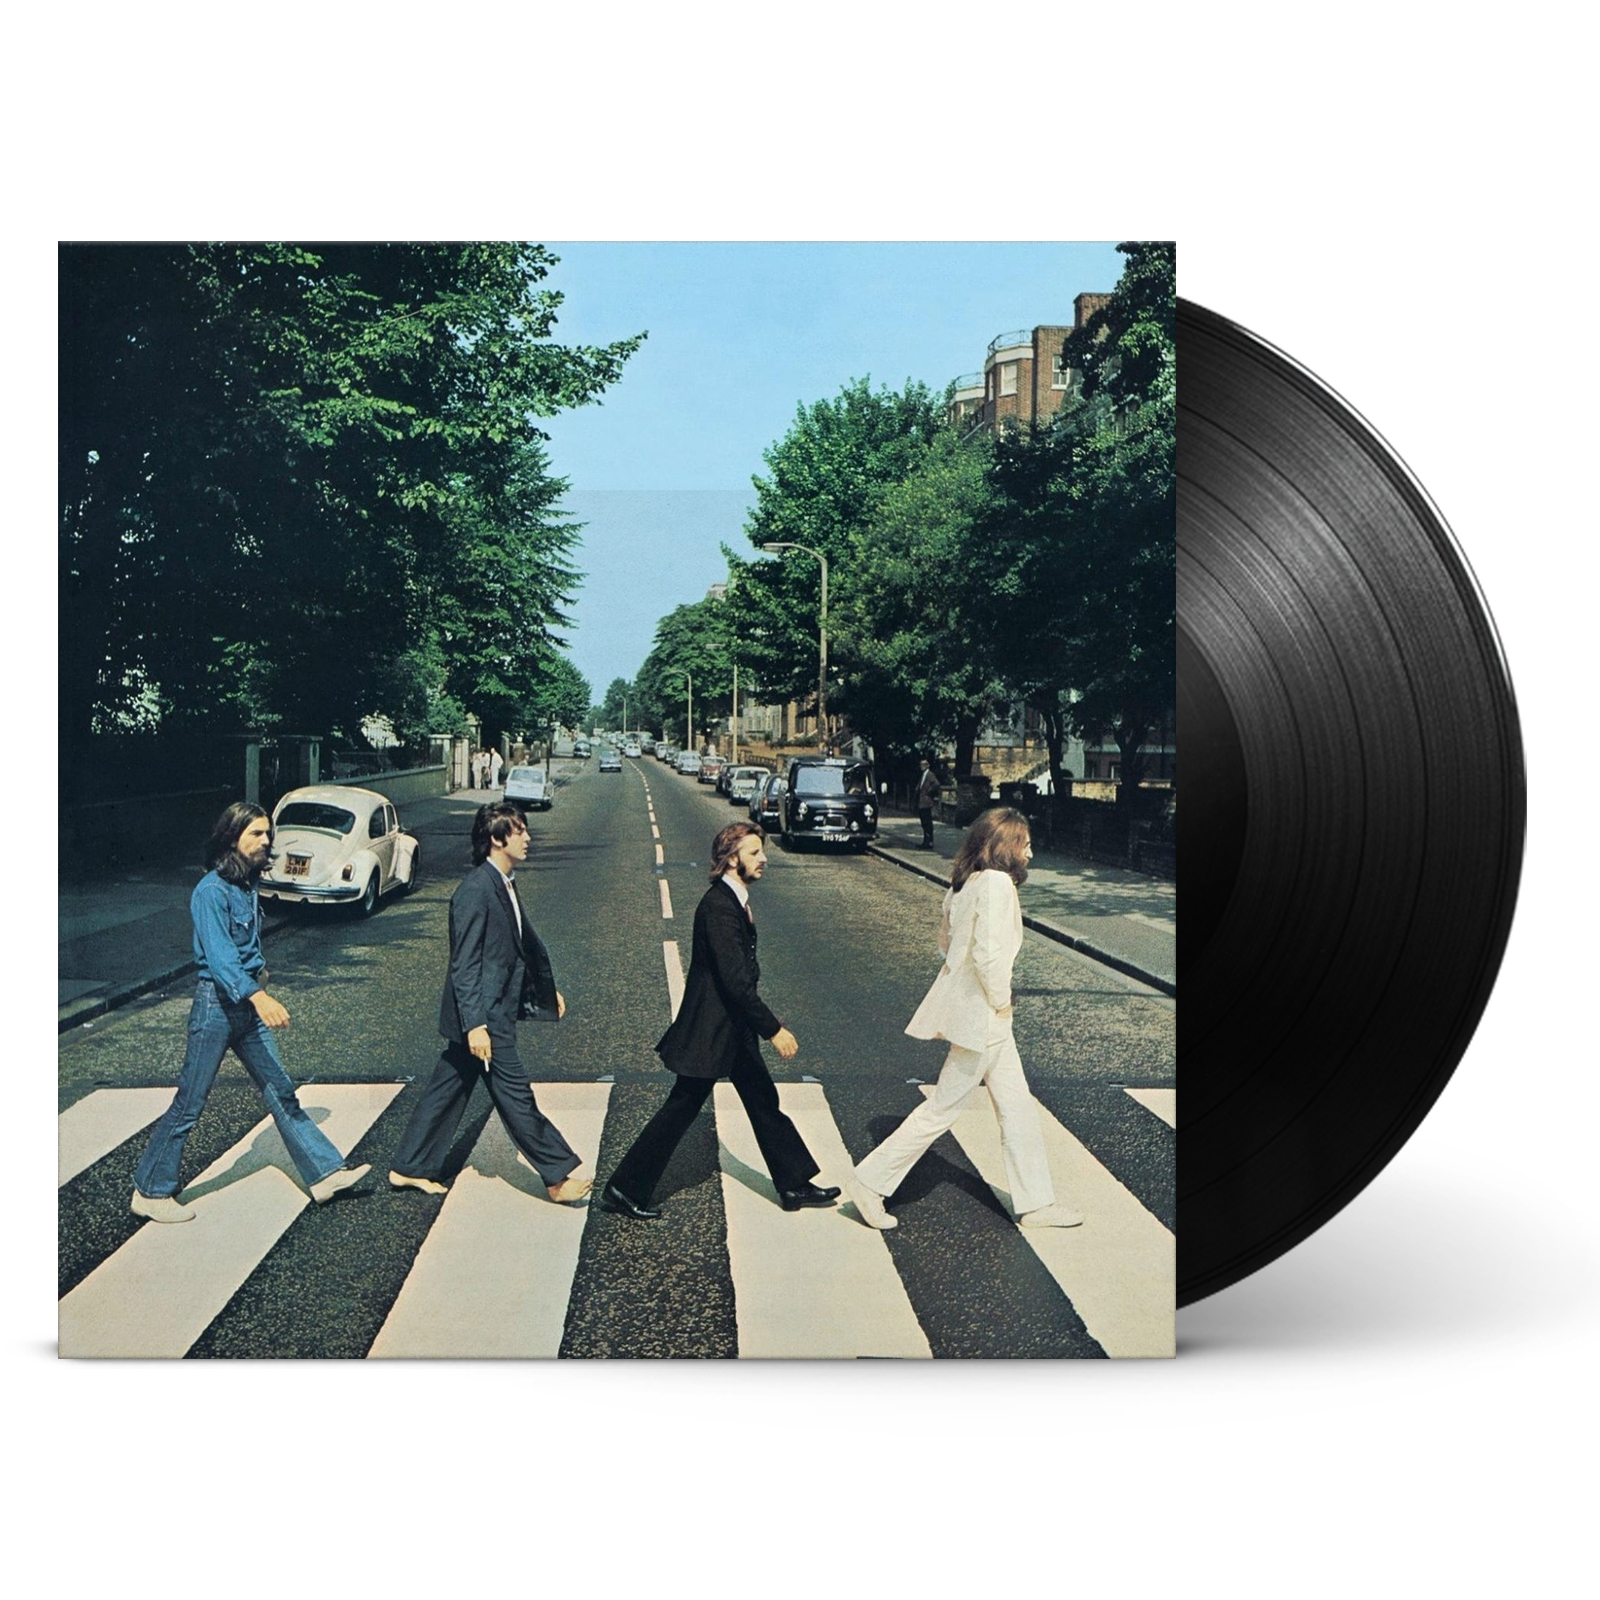 Polythene pam she came in through the bathroom window - The Beatles Abbey Road Vinyl Collections Great Gifts Cracker Barrel Old Country Store